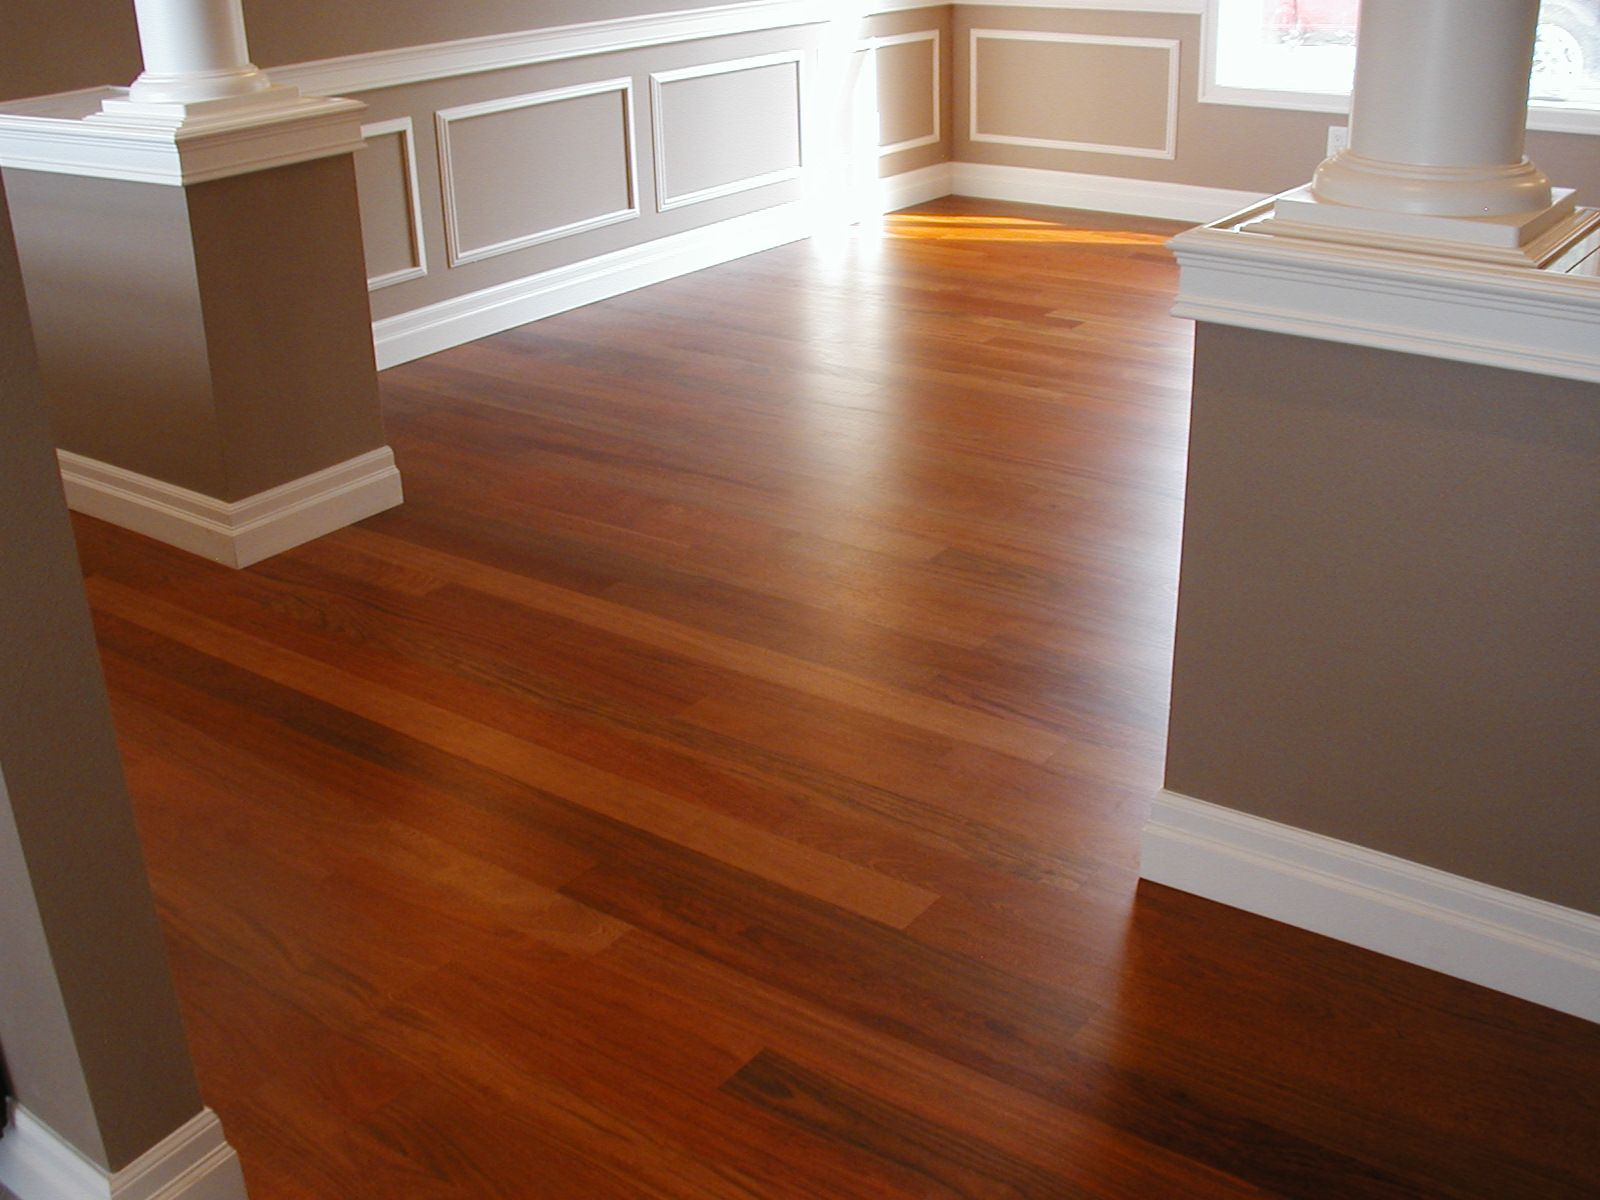 Brazilian Cherry Floors In Kitchen Help Choosing Harwood Floor Color Laminate Hardwood Cabinet Colors